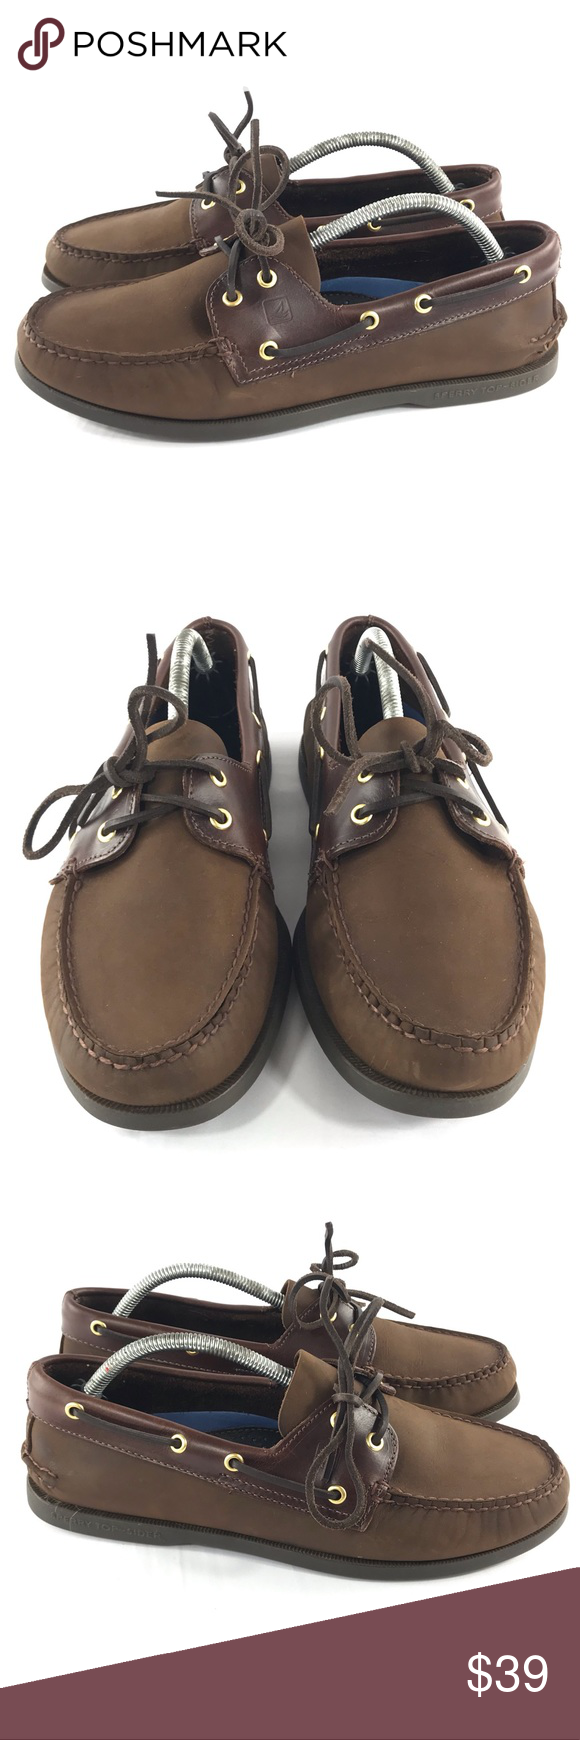 Sperry Top-Sider Boat Shoes Size 11XW